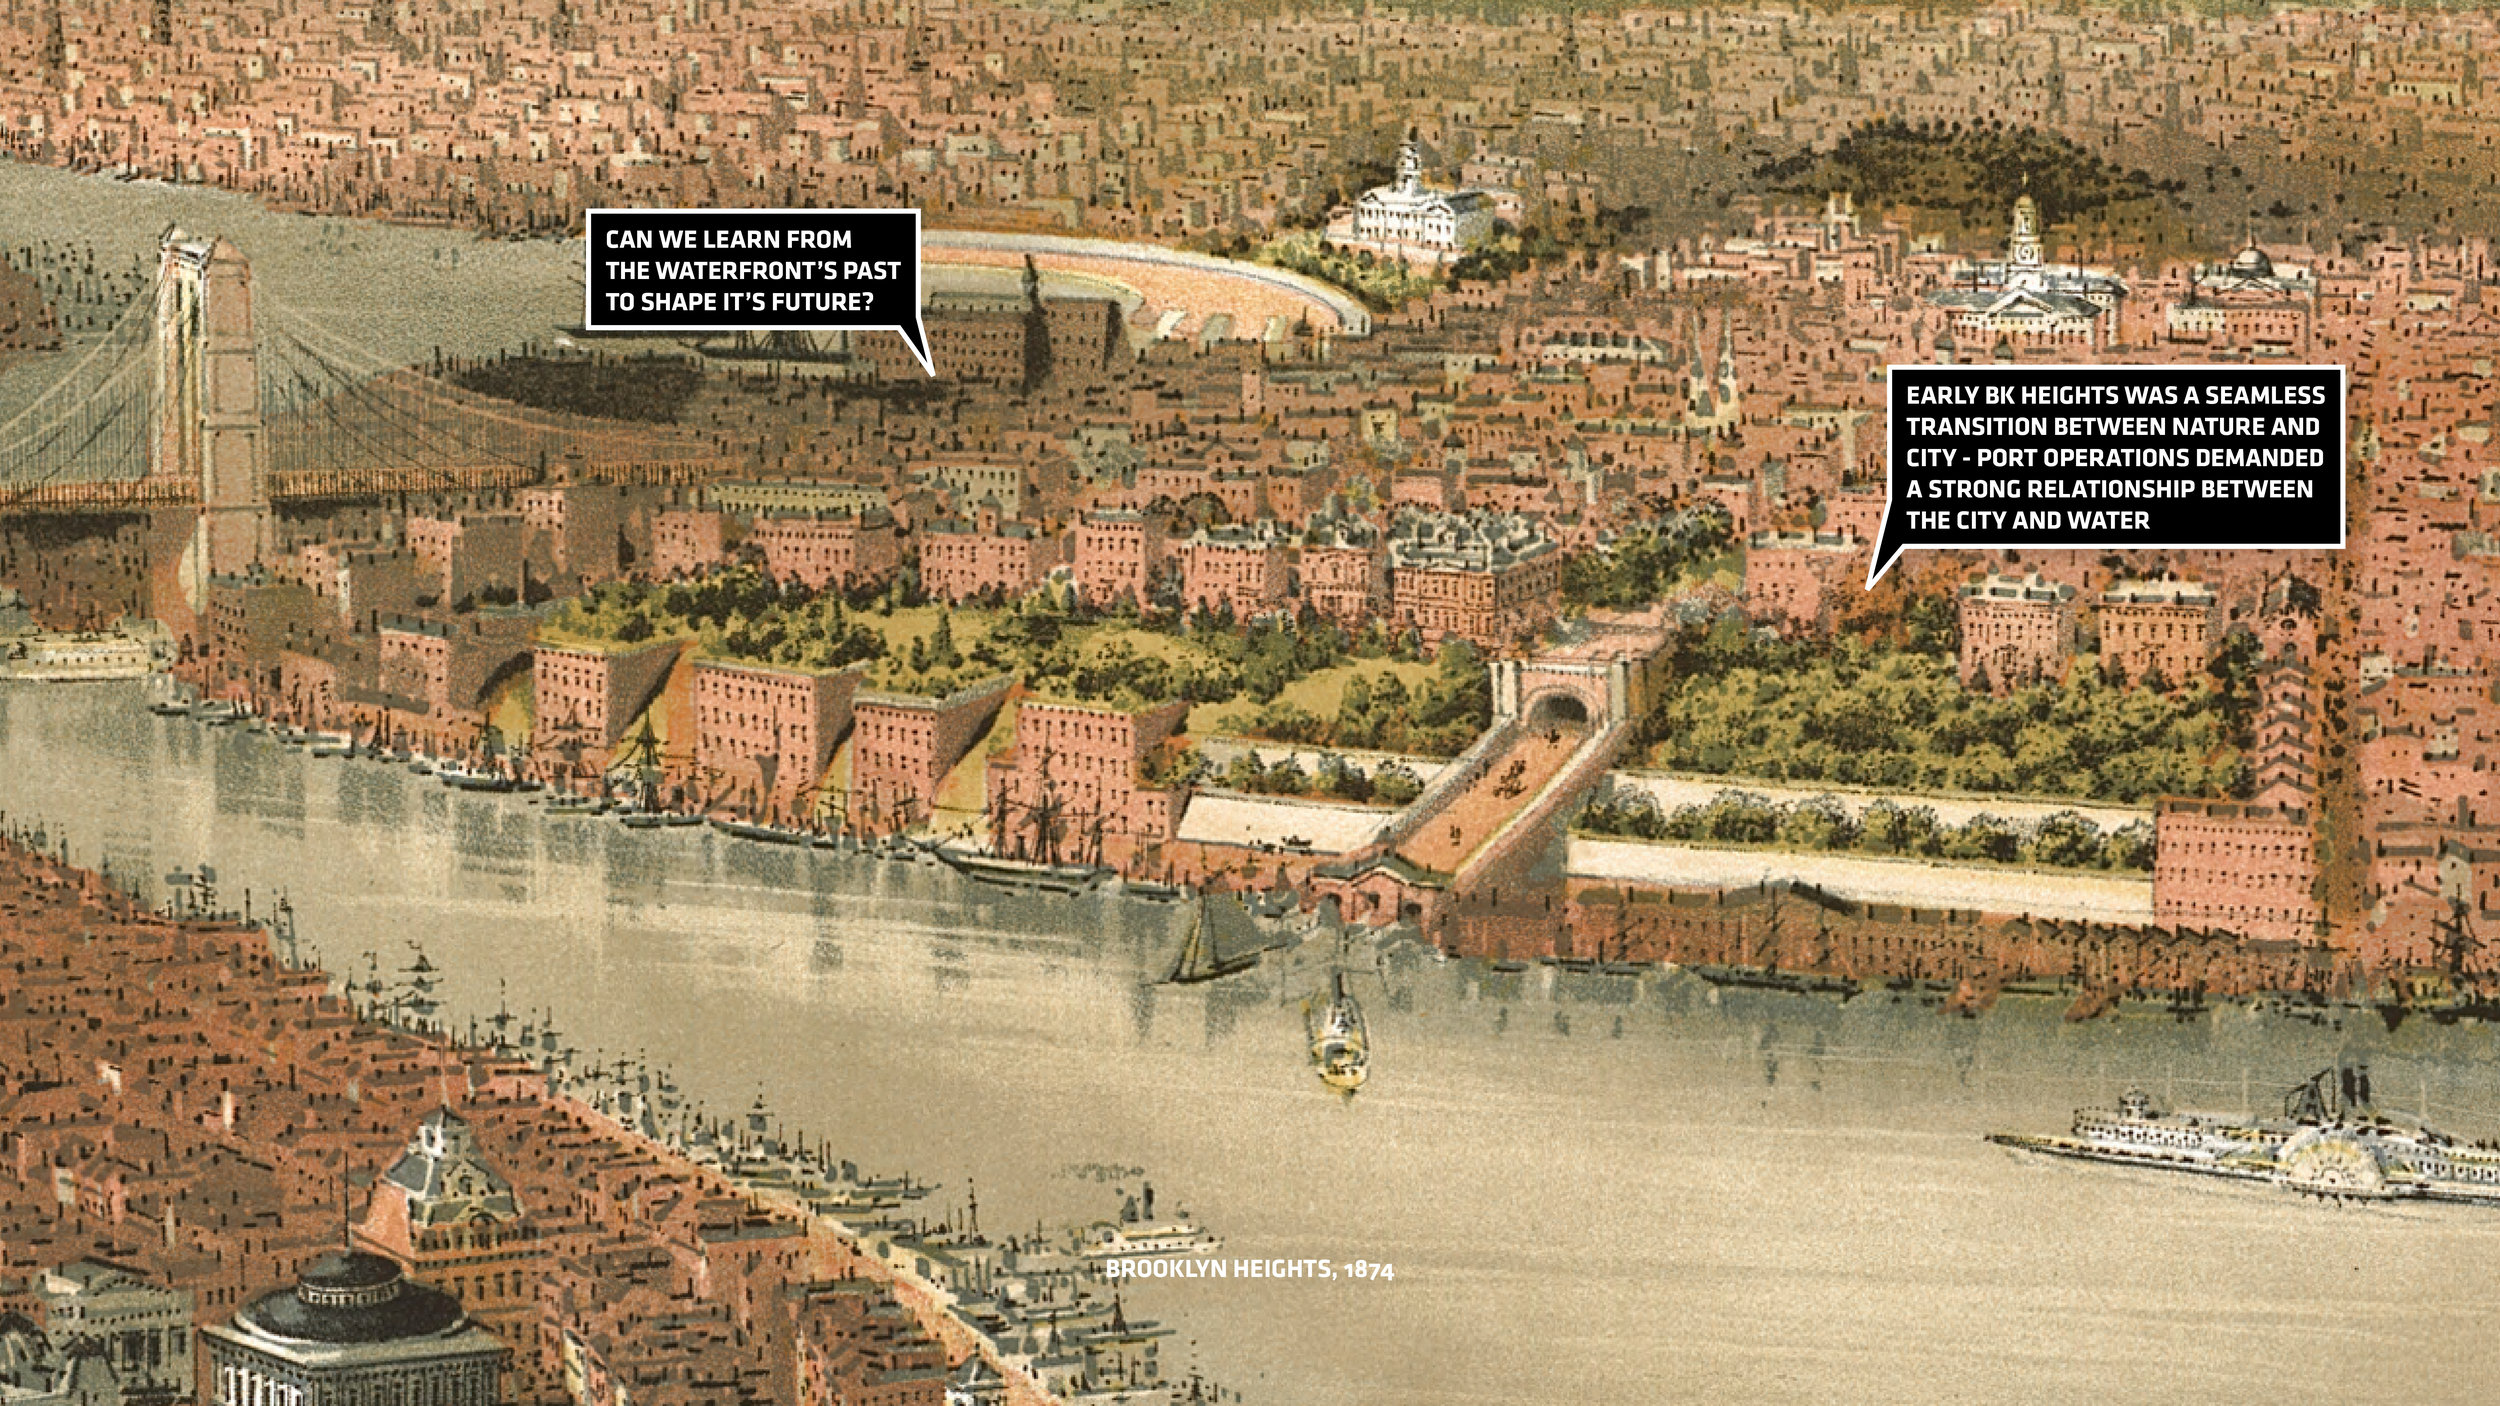 Brooklyn Heights as depicted in 1874. Image credit - (BIG) Bjarke Ingels Group.